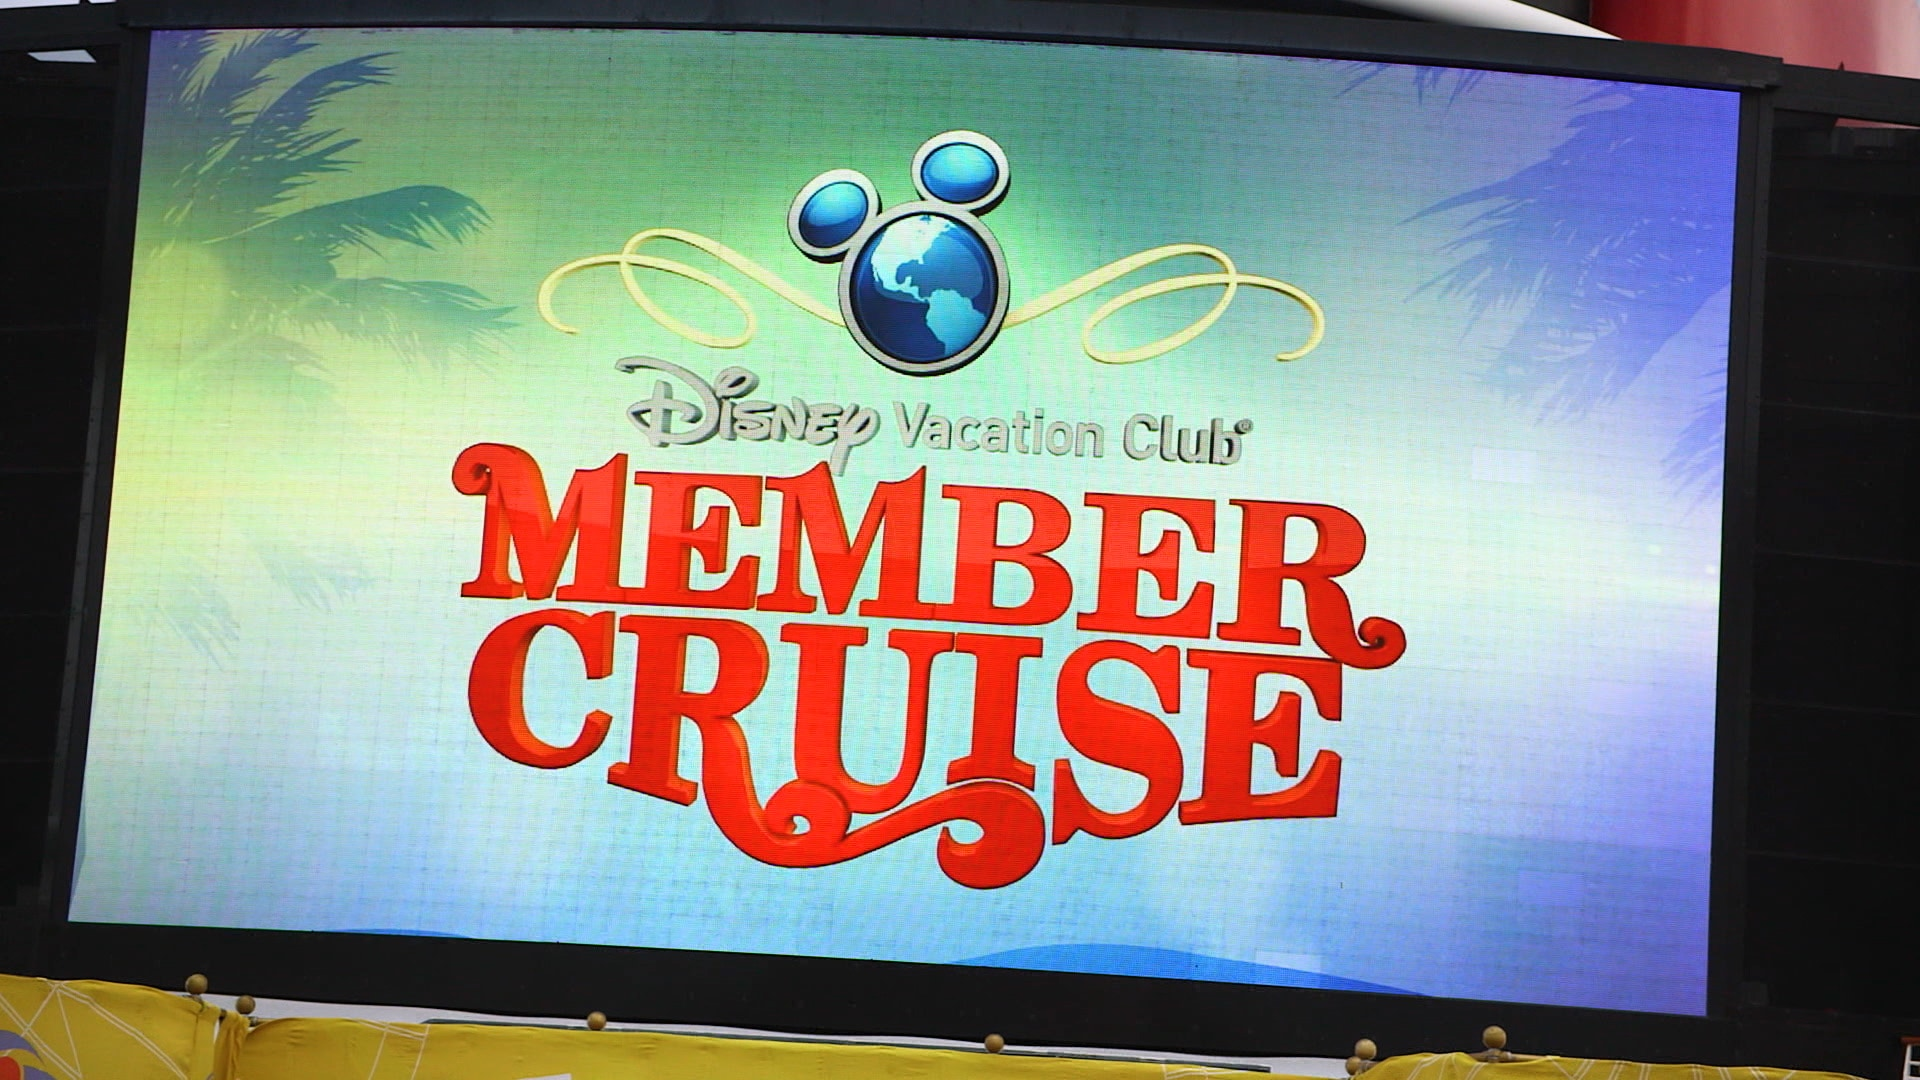 Disney Vacation Club Points For Cruise Lifehacked1st Com